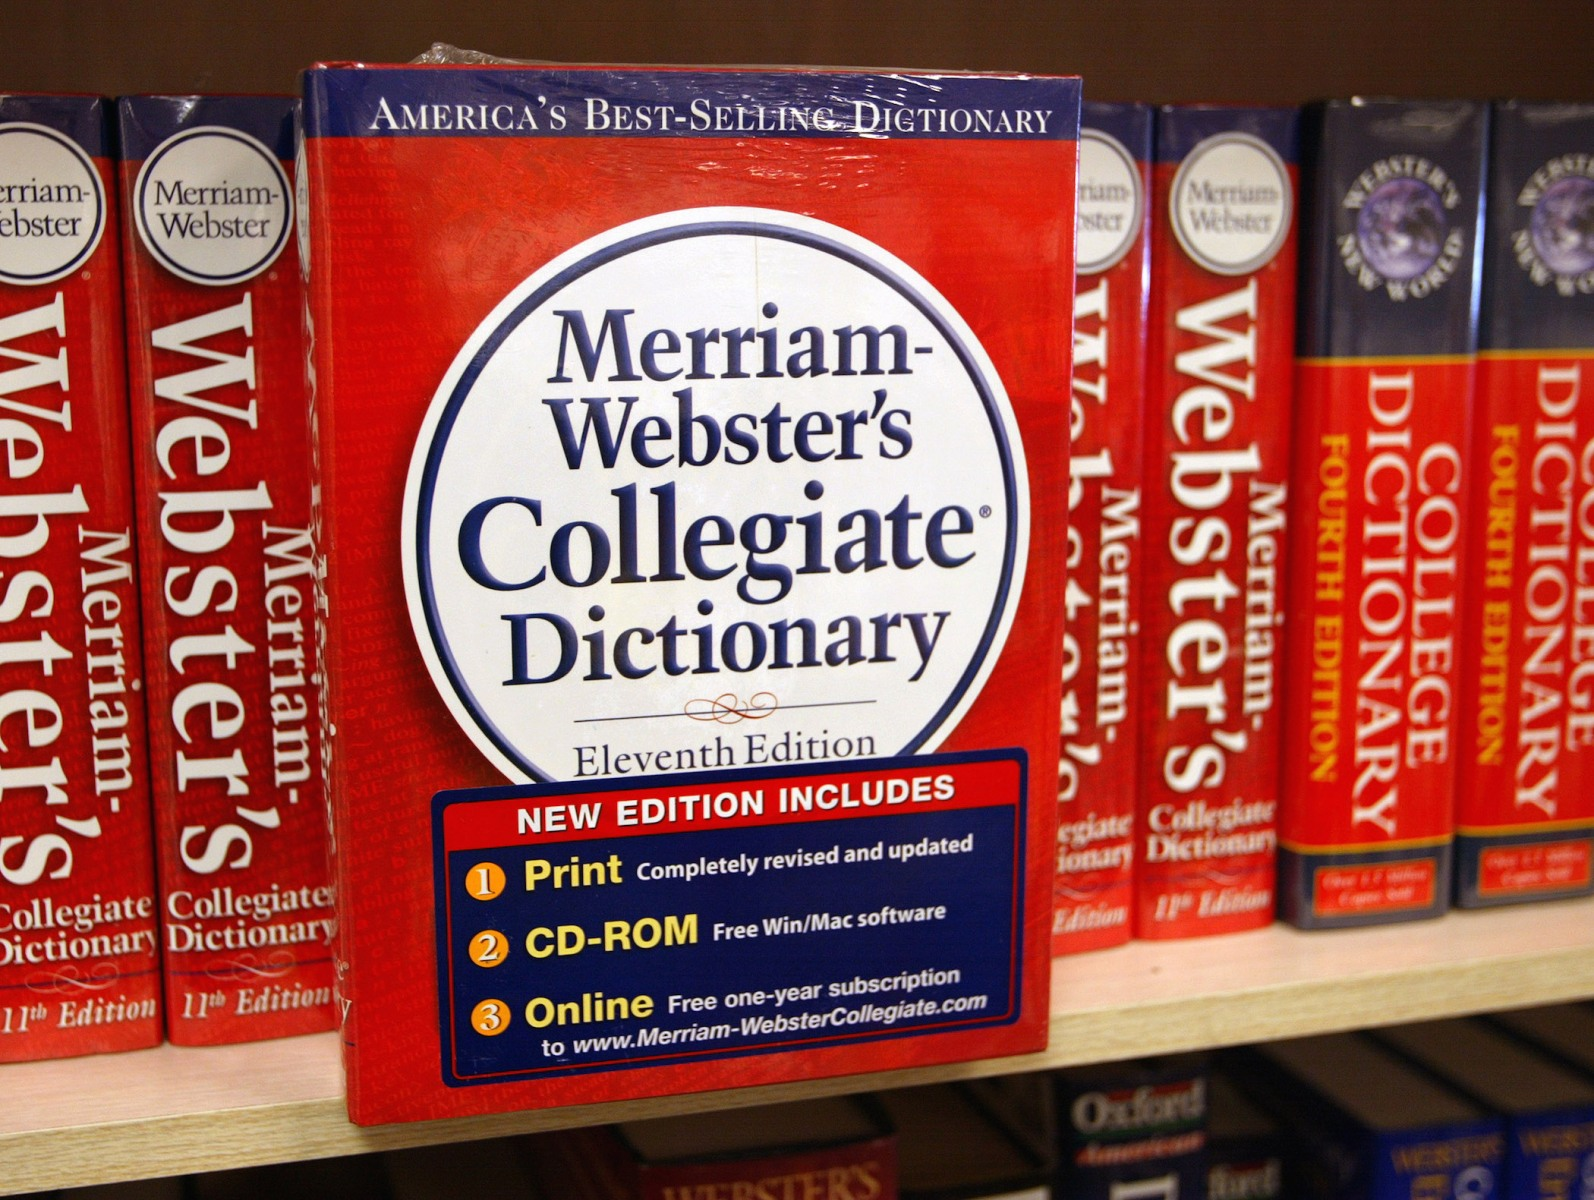 A Merriam-Webster's Collegiate Dictionary is displayed in a bookstore November 10, 2003 in Niles, Illinois. (Photo by Tim Boyle/Getty Images)